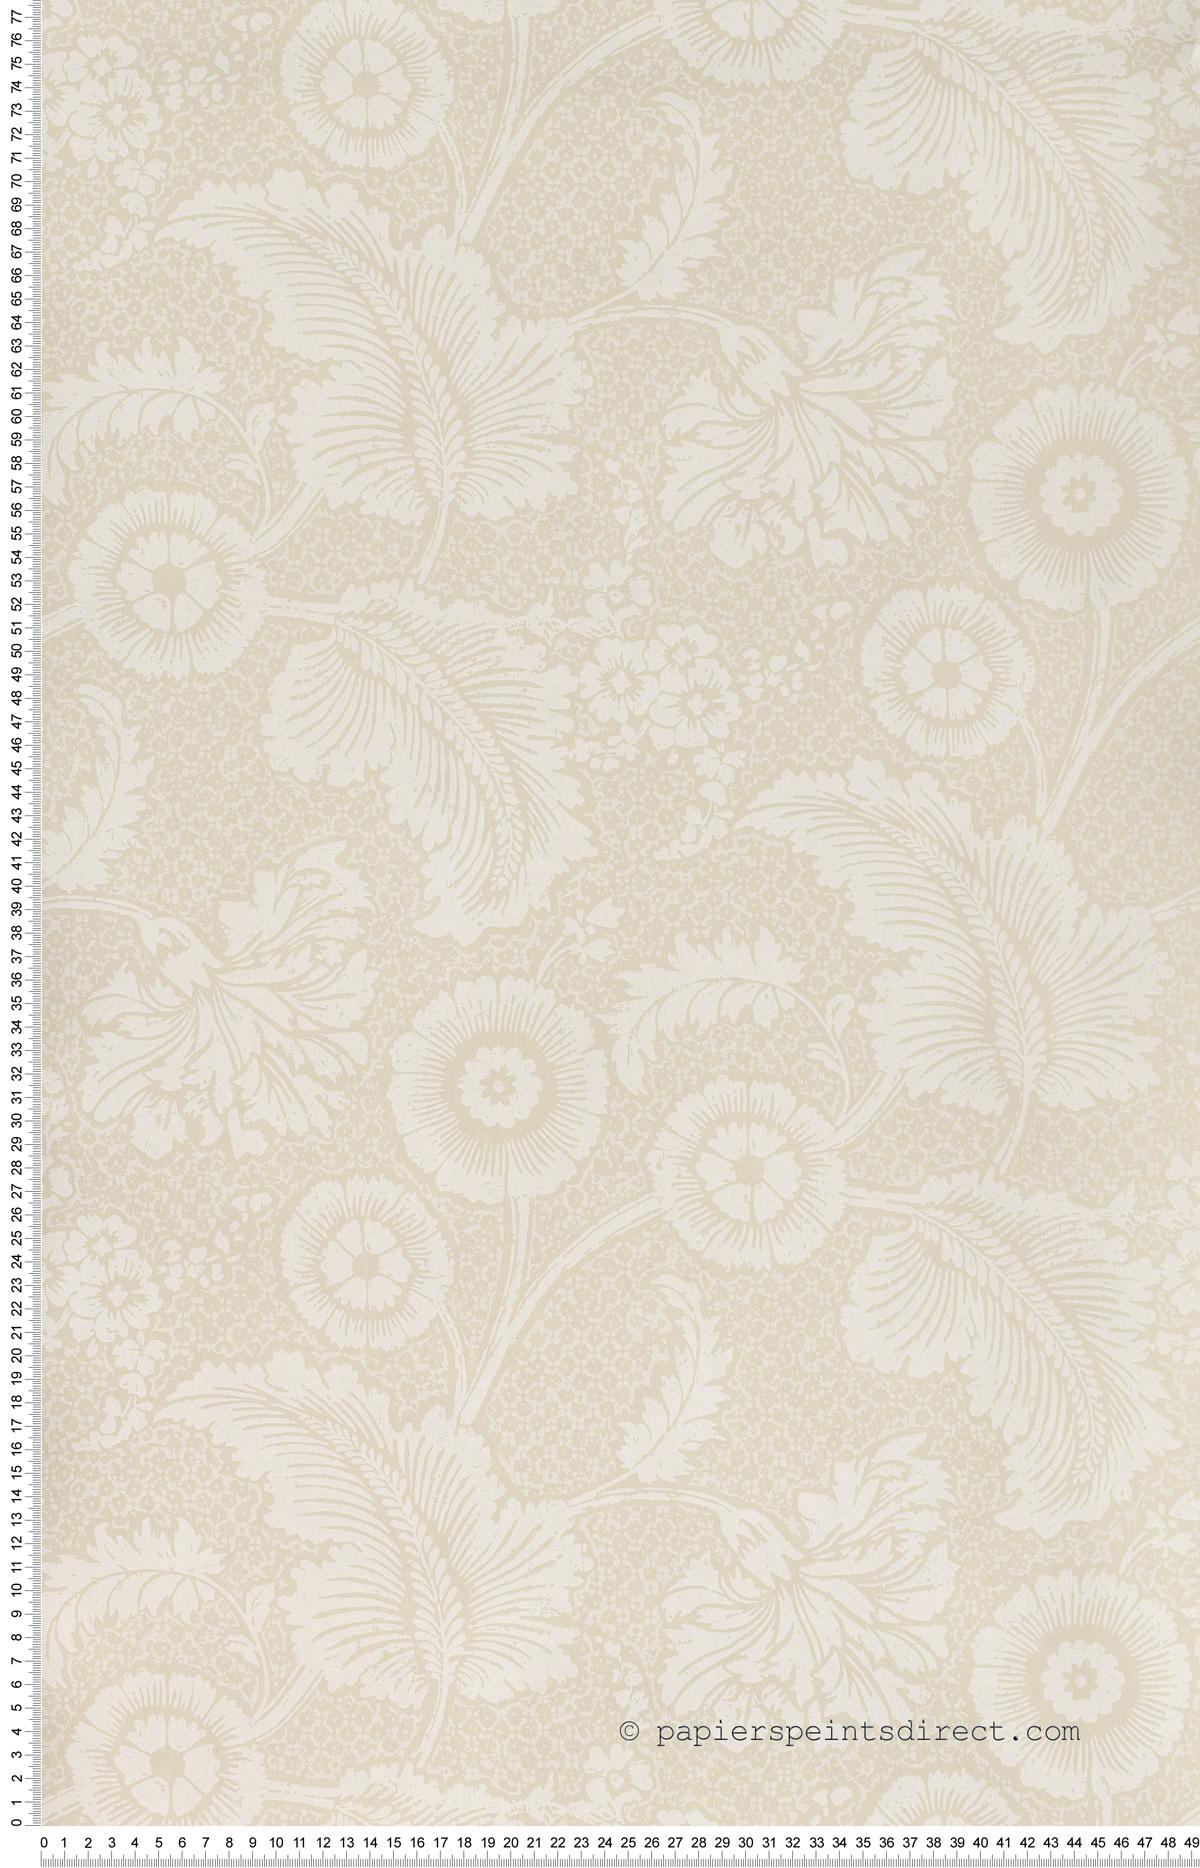 Piccadilly Plume - papier peint Revolution Papers de Little Greene